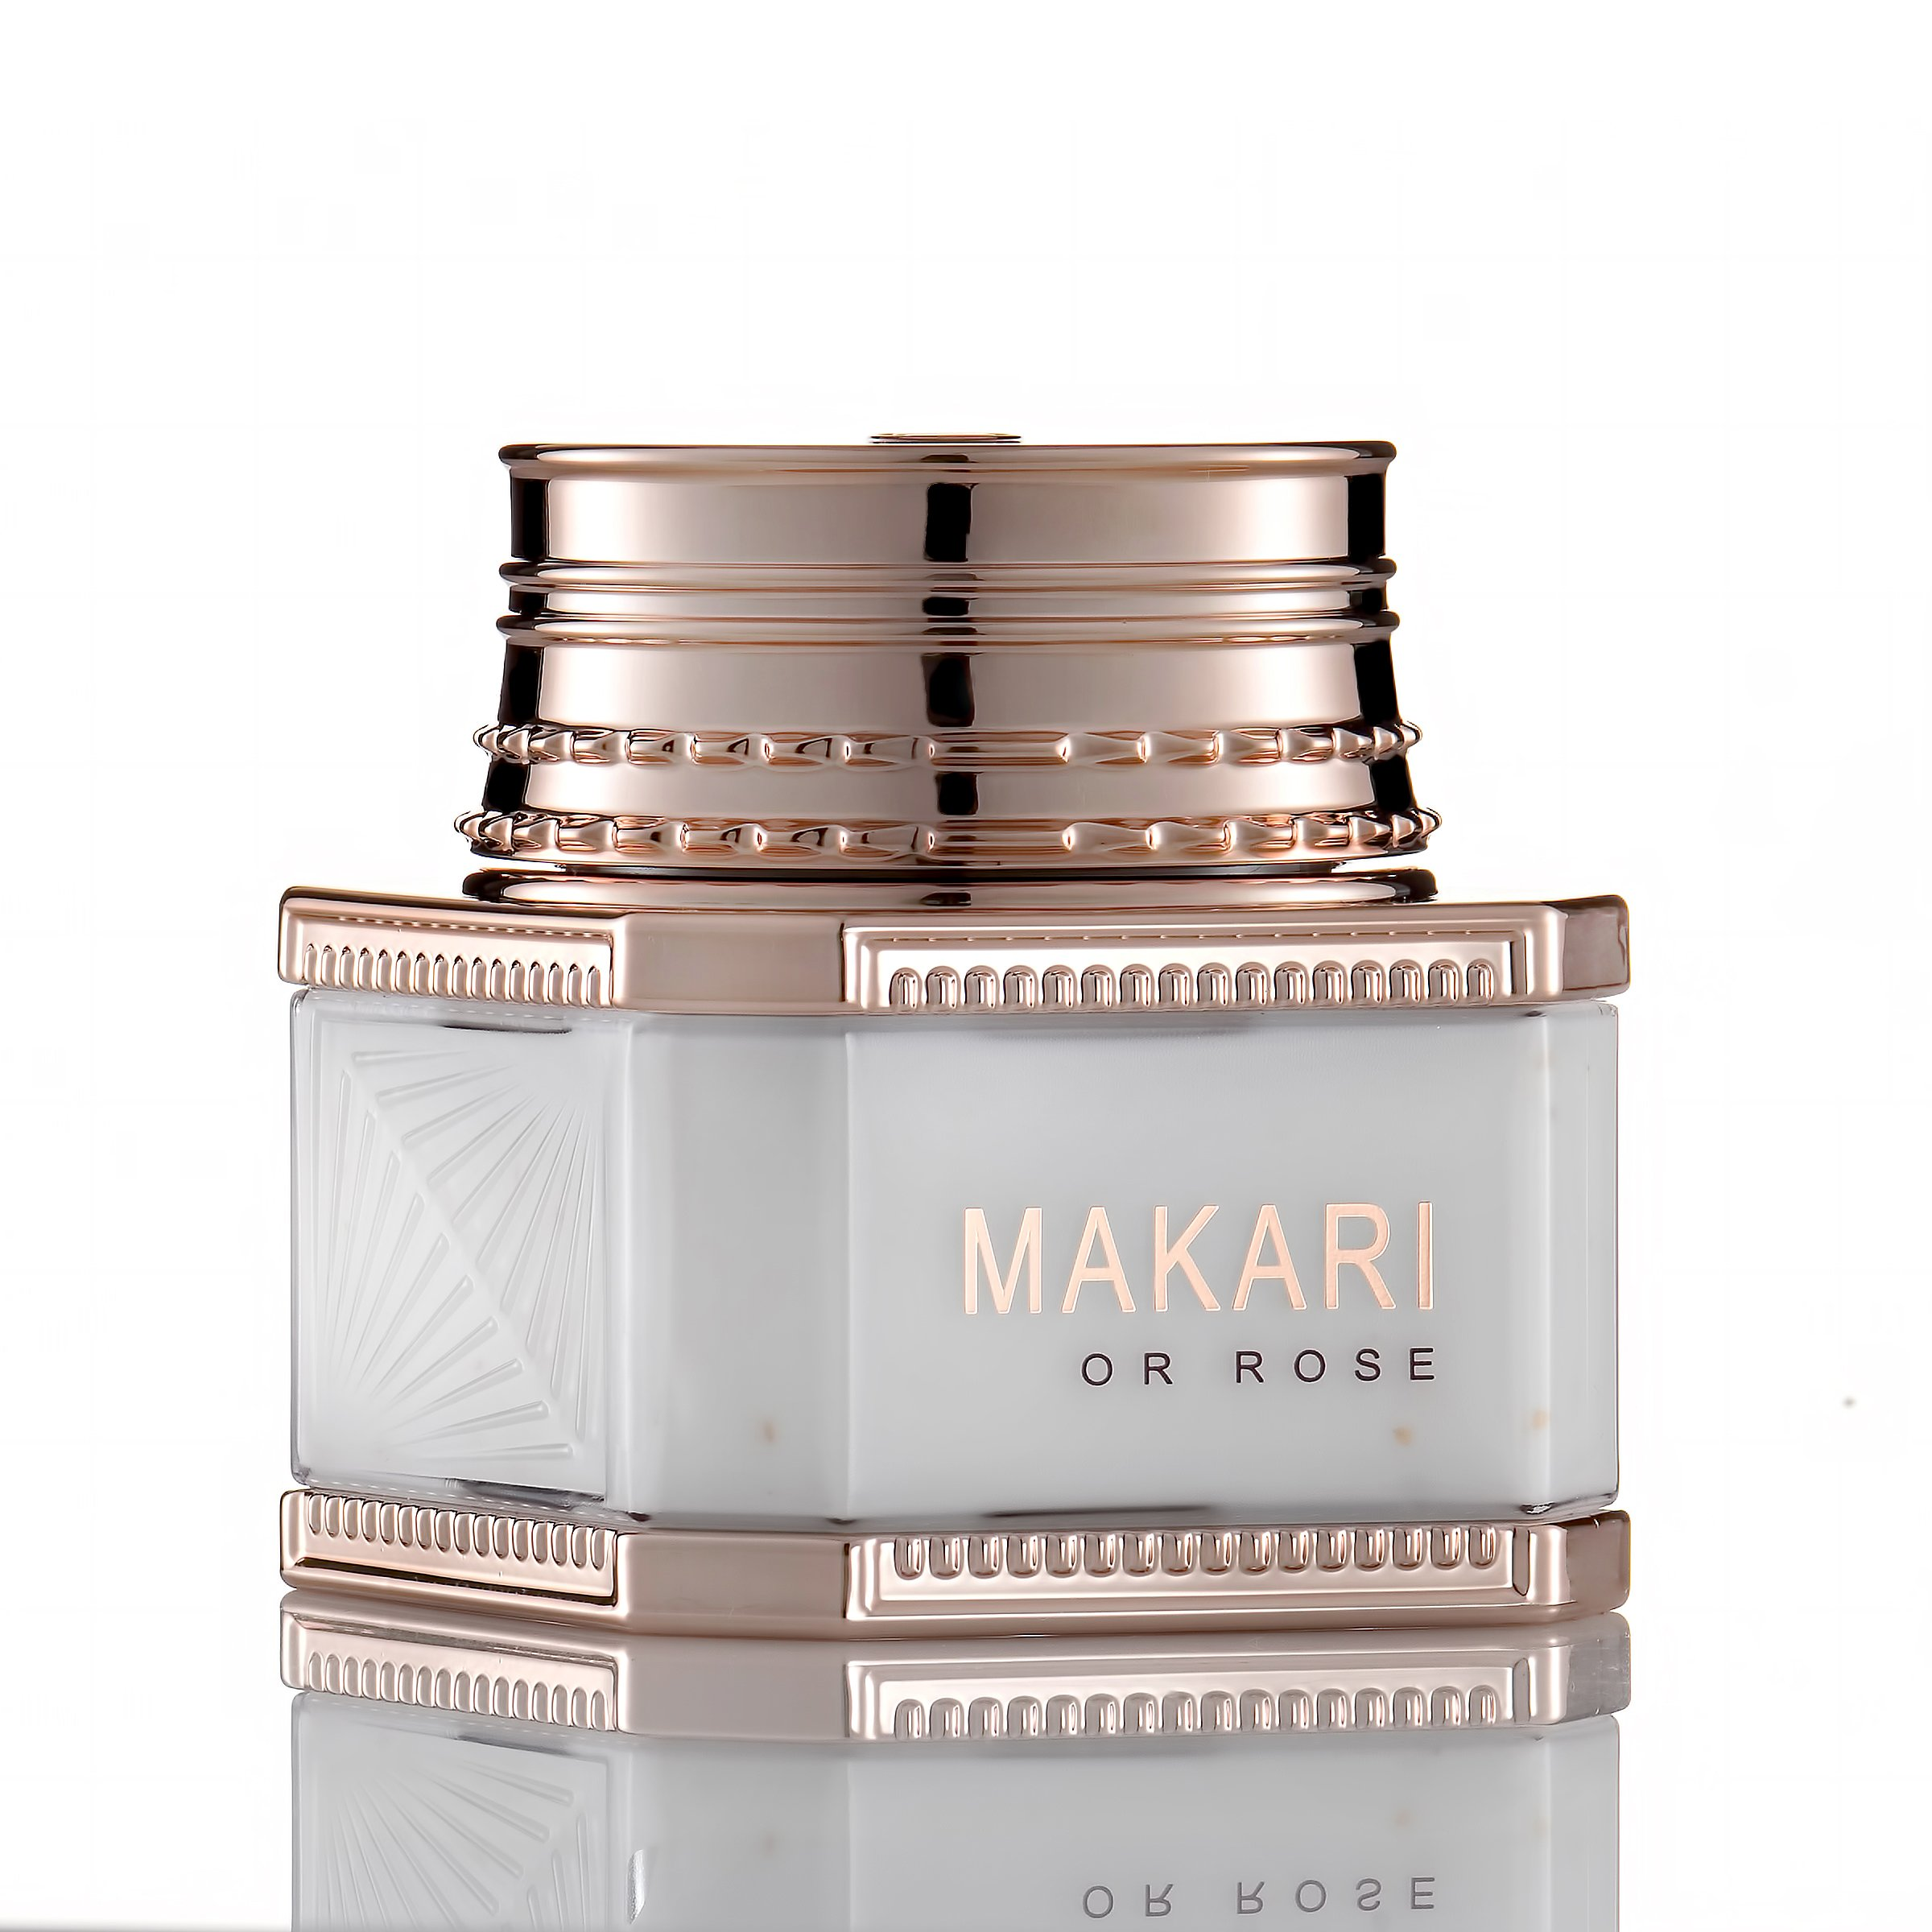 Makari 24K Gold Night Treatment FACE Cream –Anti-Aging Nighttime Moisturizer w/Real Gold Particles, Omega 3 & Active Probiotics for Wrinkles, Dark Spots, Scars & Blemishes – Luxurious Formula